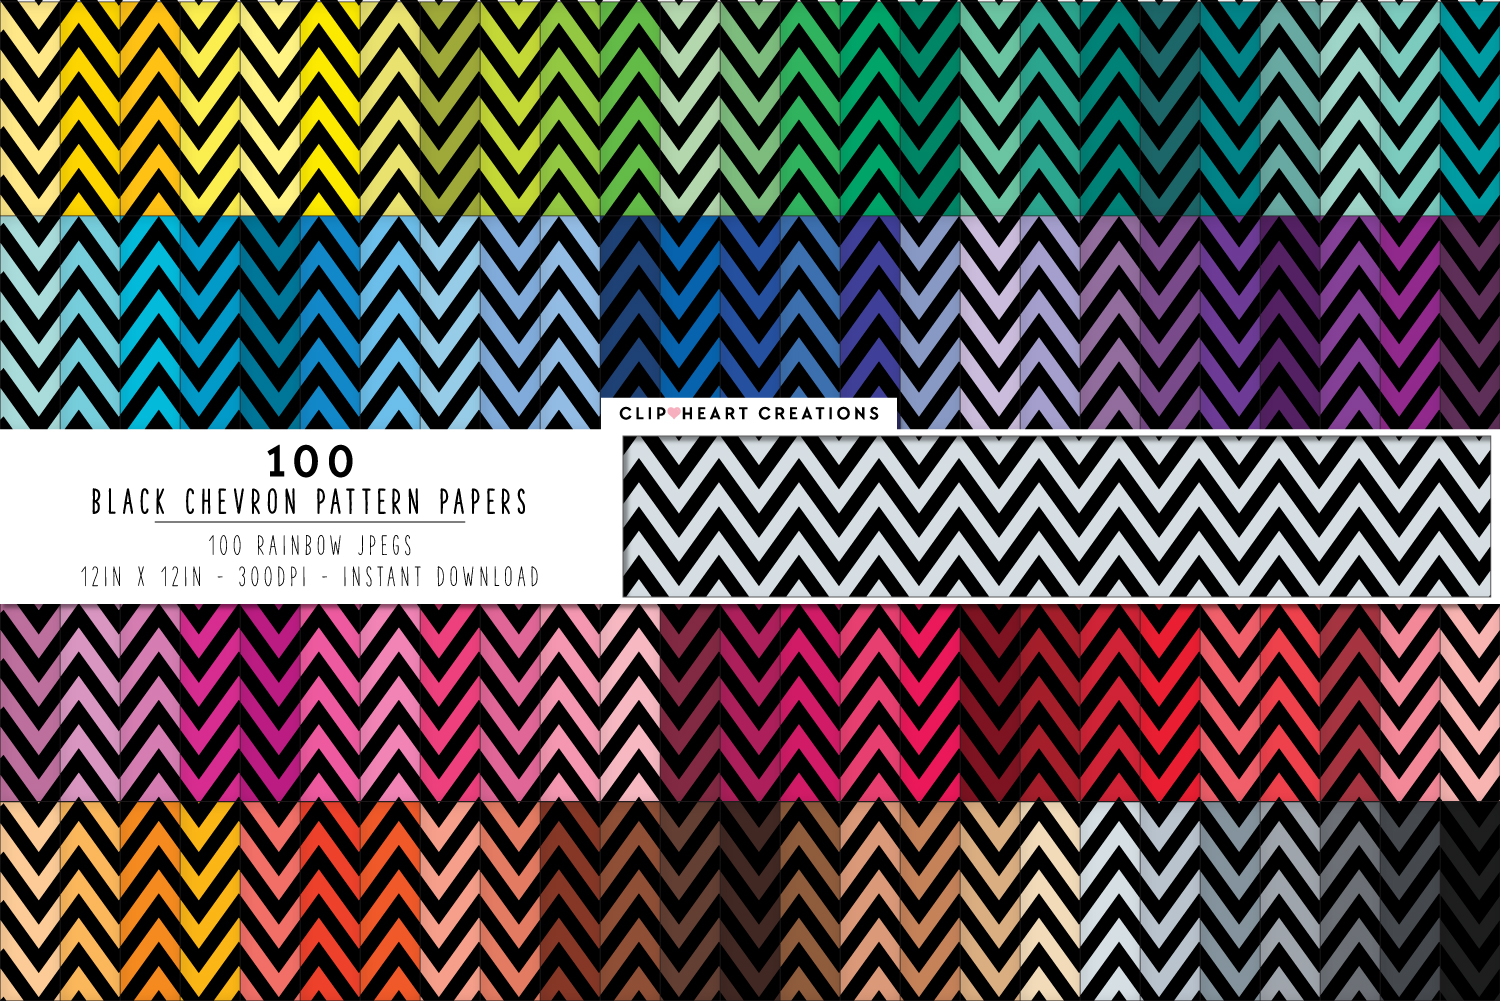 Download Free 100 Chevron Digital Paper Pack Graphic By Clipheartcreations for Cricut Explore, Silhouette and other cutting machines.